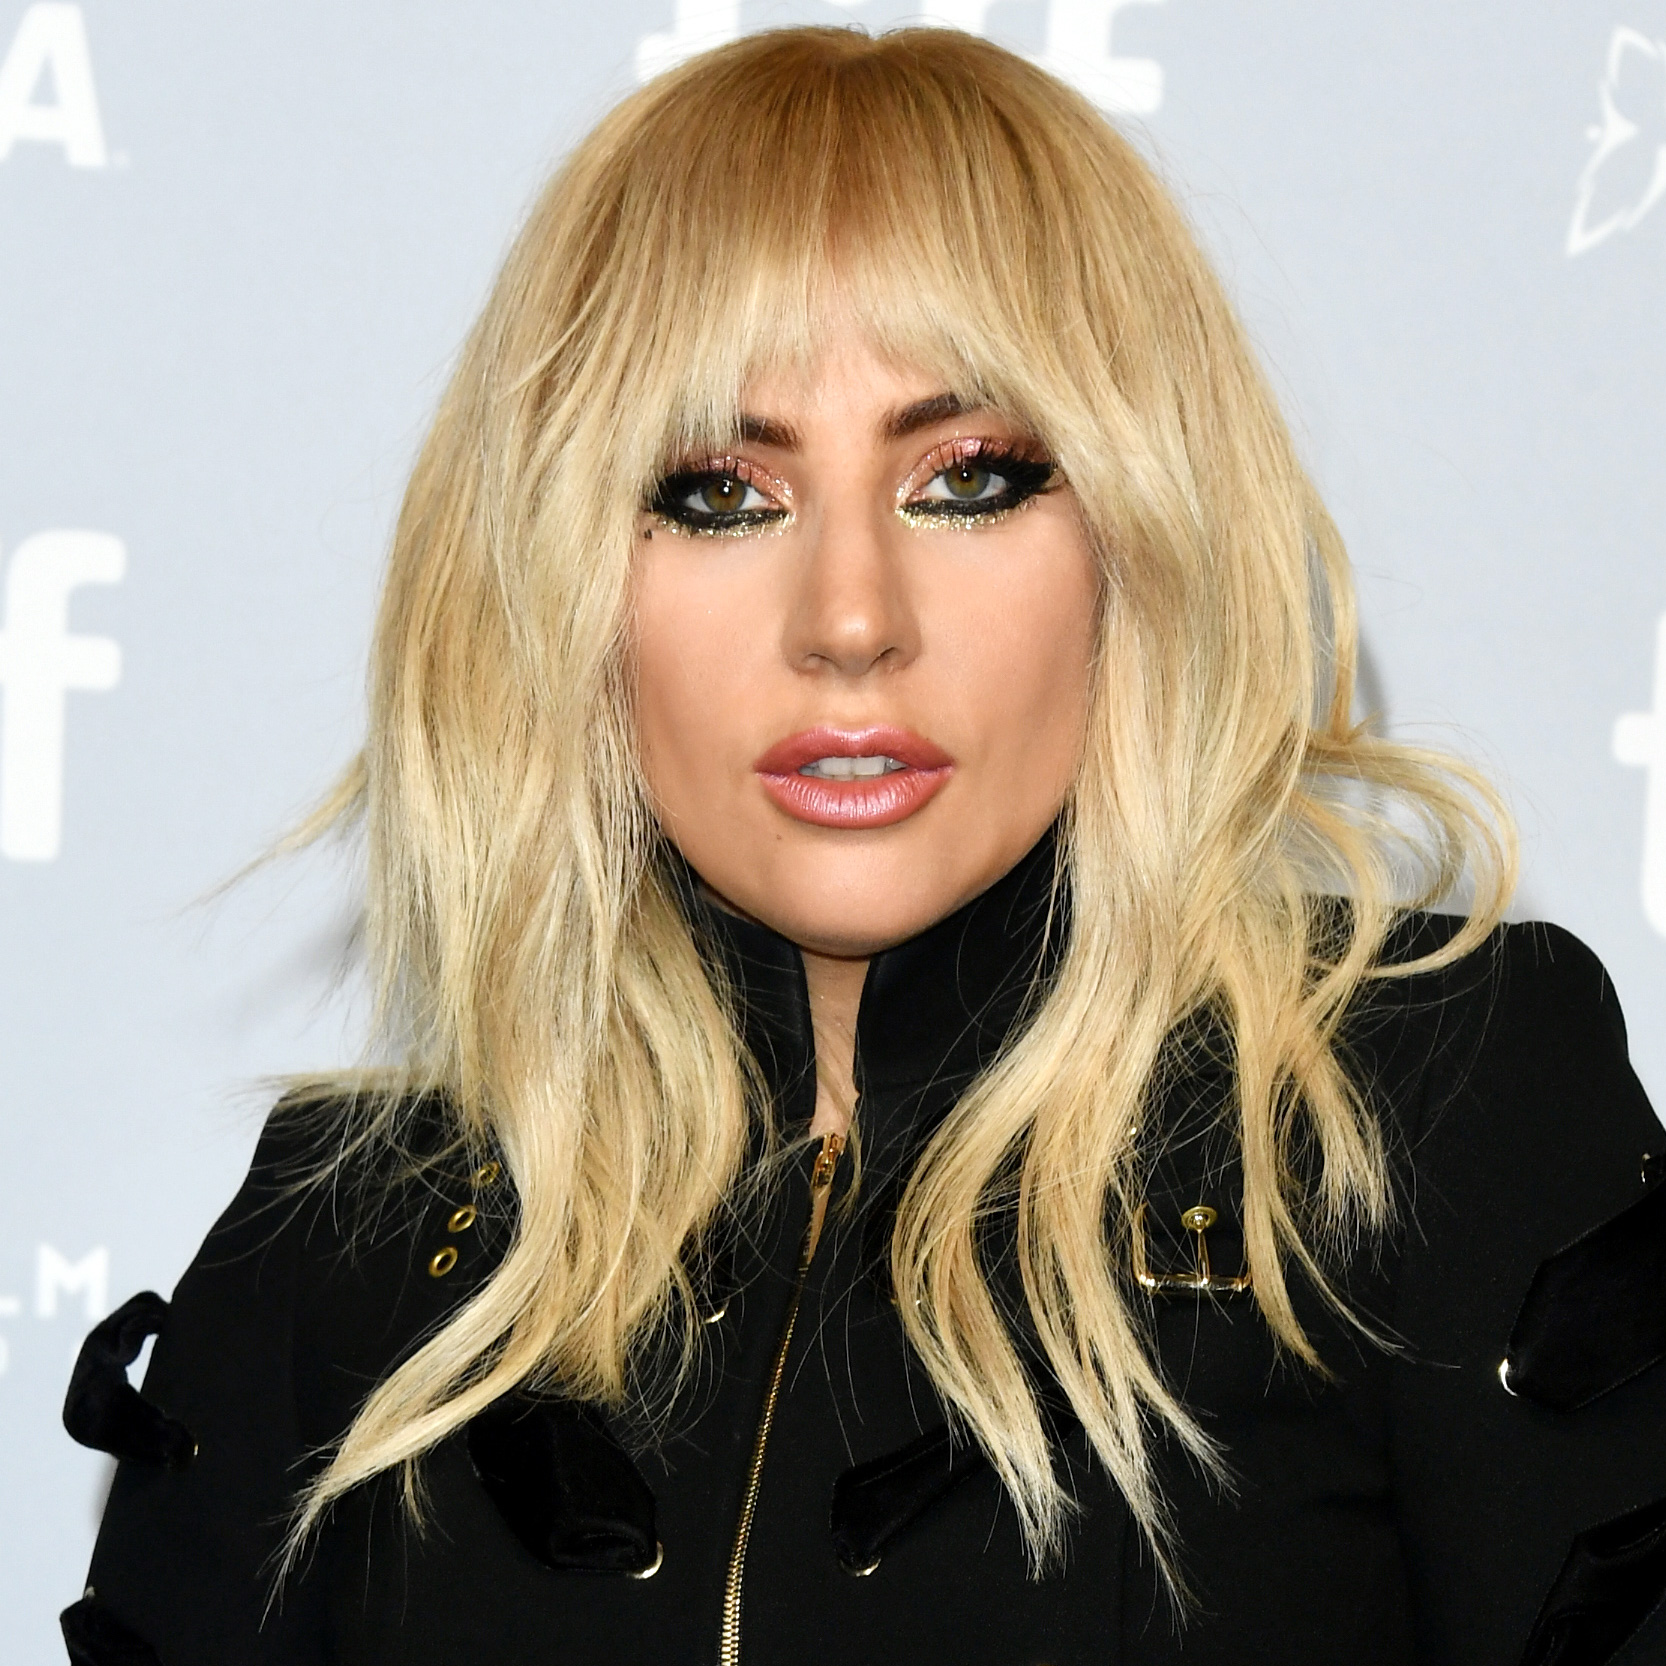 Celebs Who Revealed Health Issues in 2017 - Lady Gaga